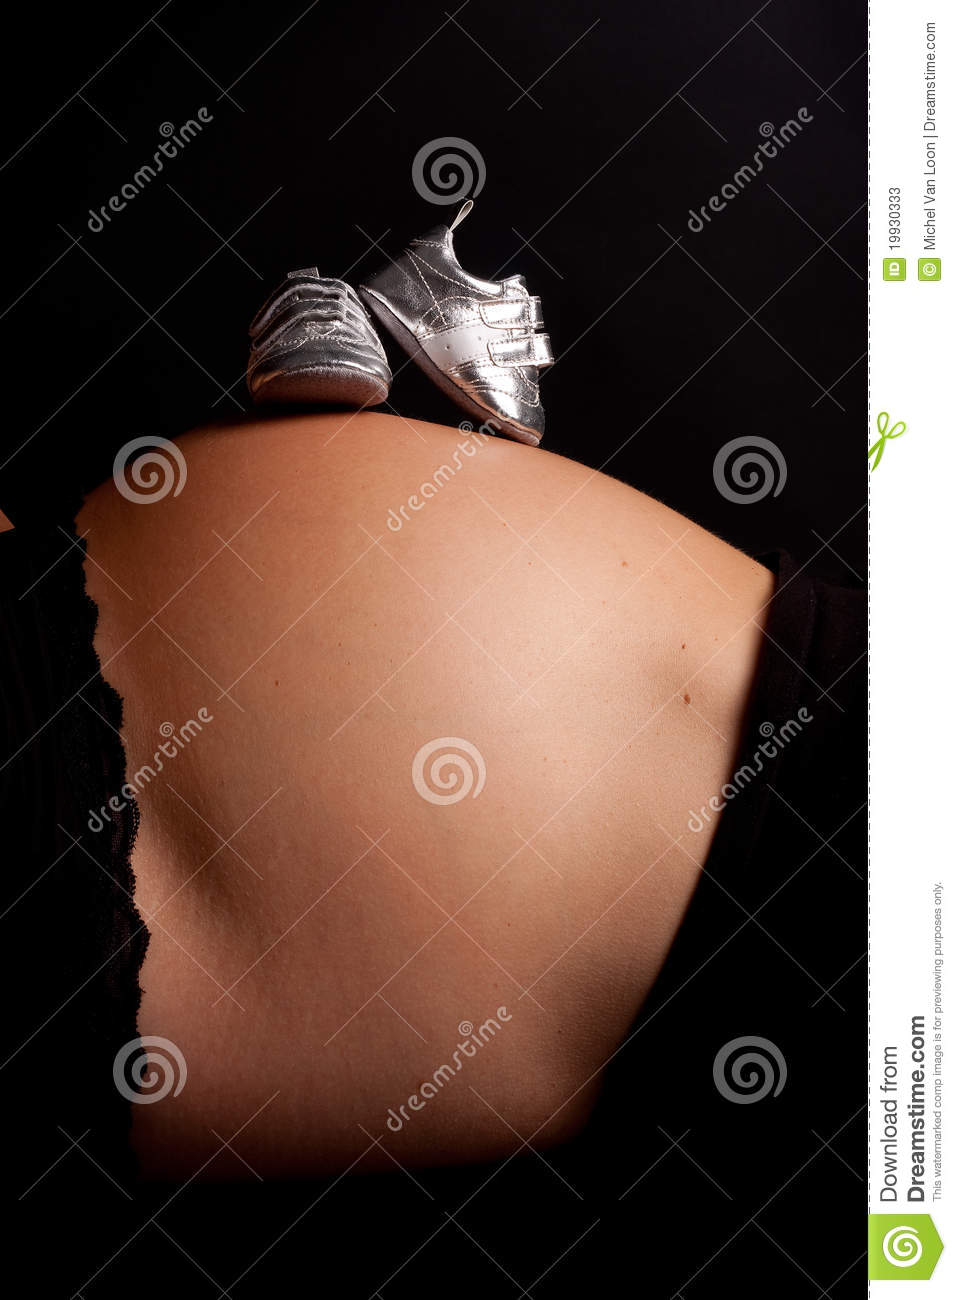 Stock Photos: Pregnant belly with silver shoes